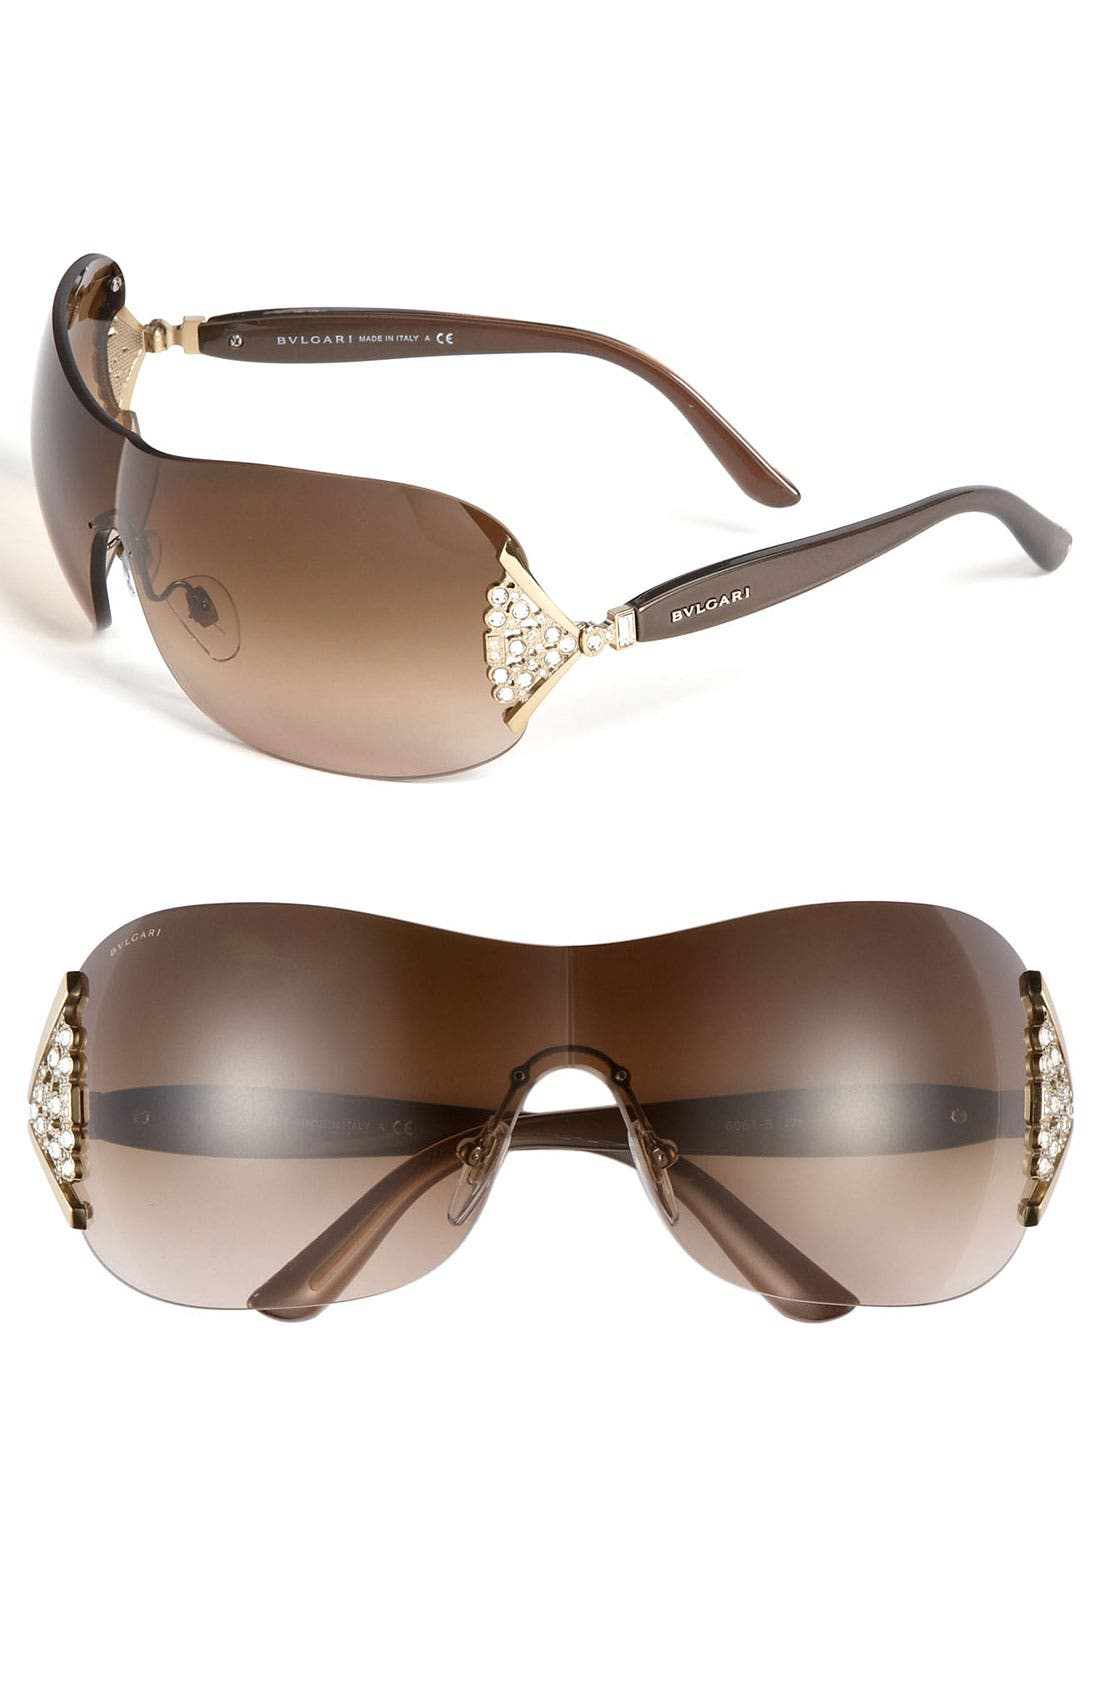 Main Image - BVLGARI 63mm Swarovski Crystal Rimless Shield Sunglasses